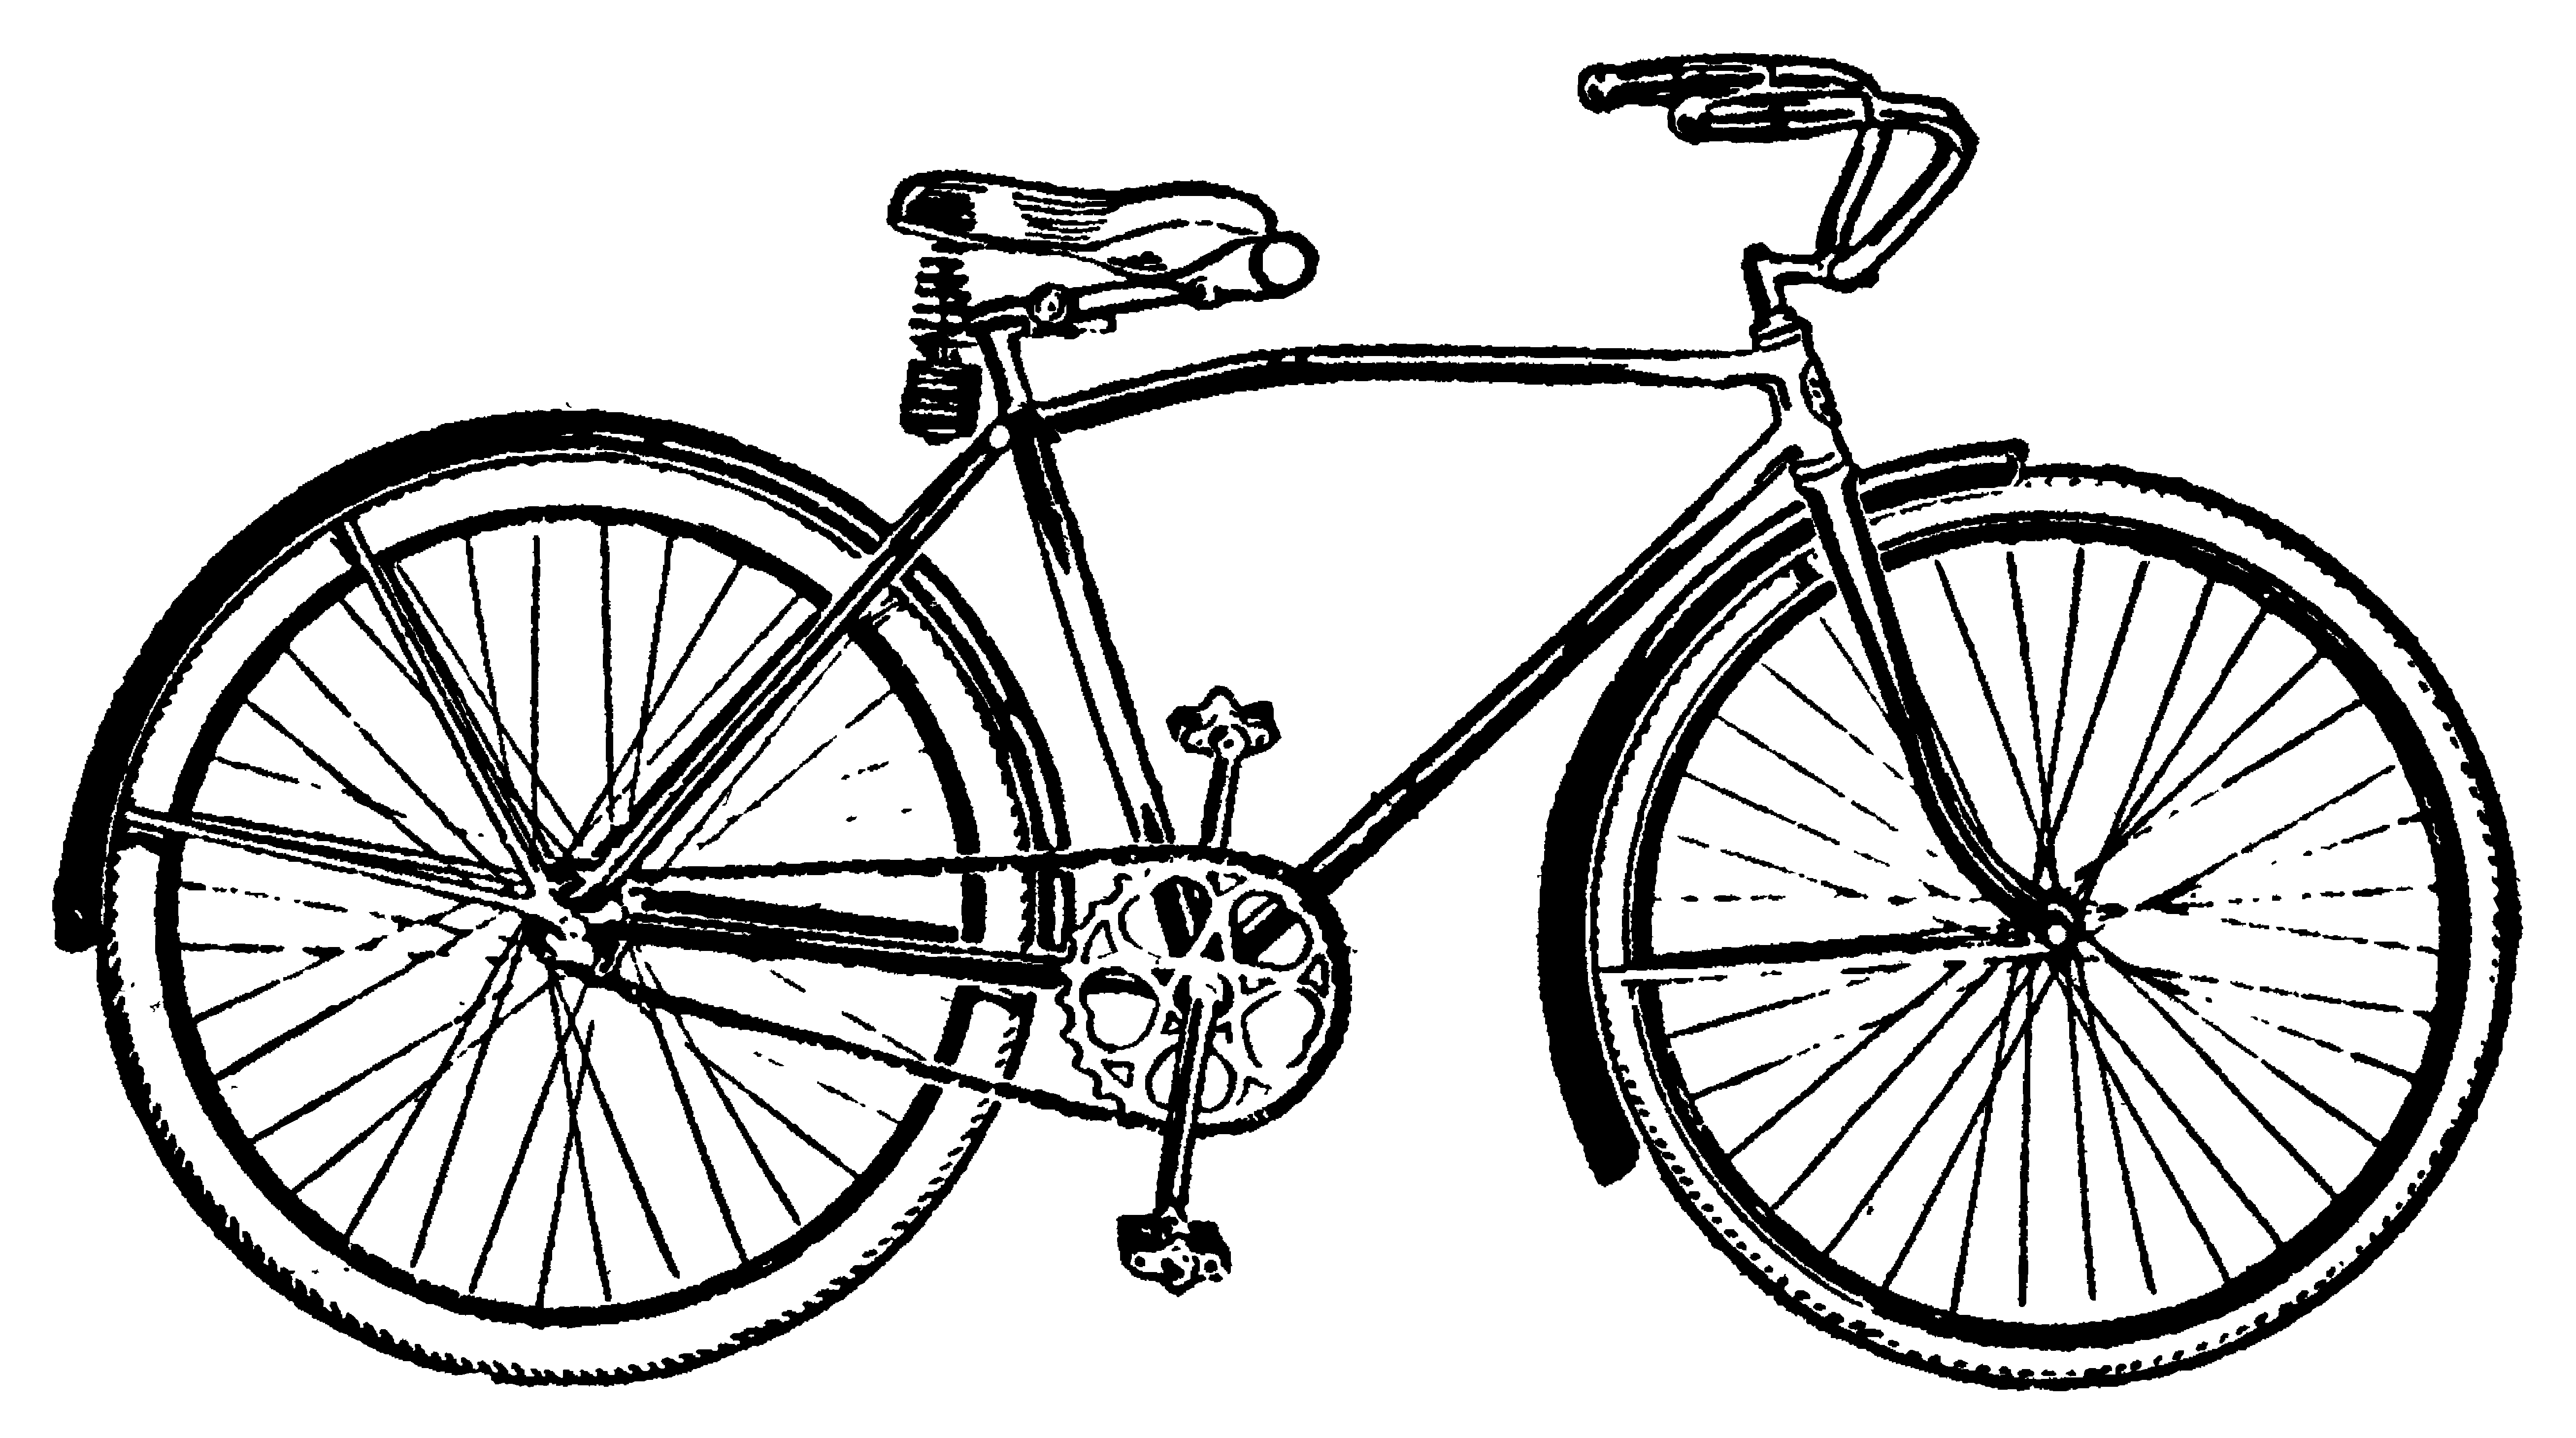 banner royalty free download Biking clipart vintage bicycle. Clip art free .